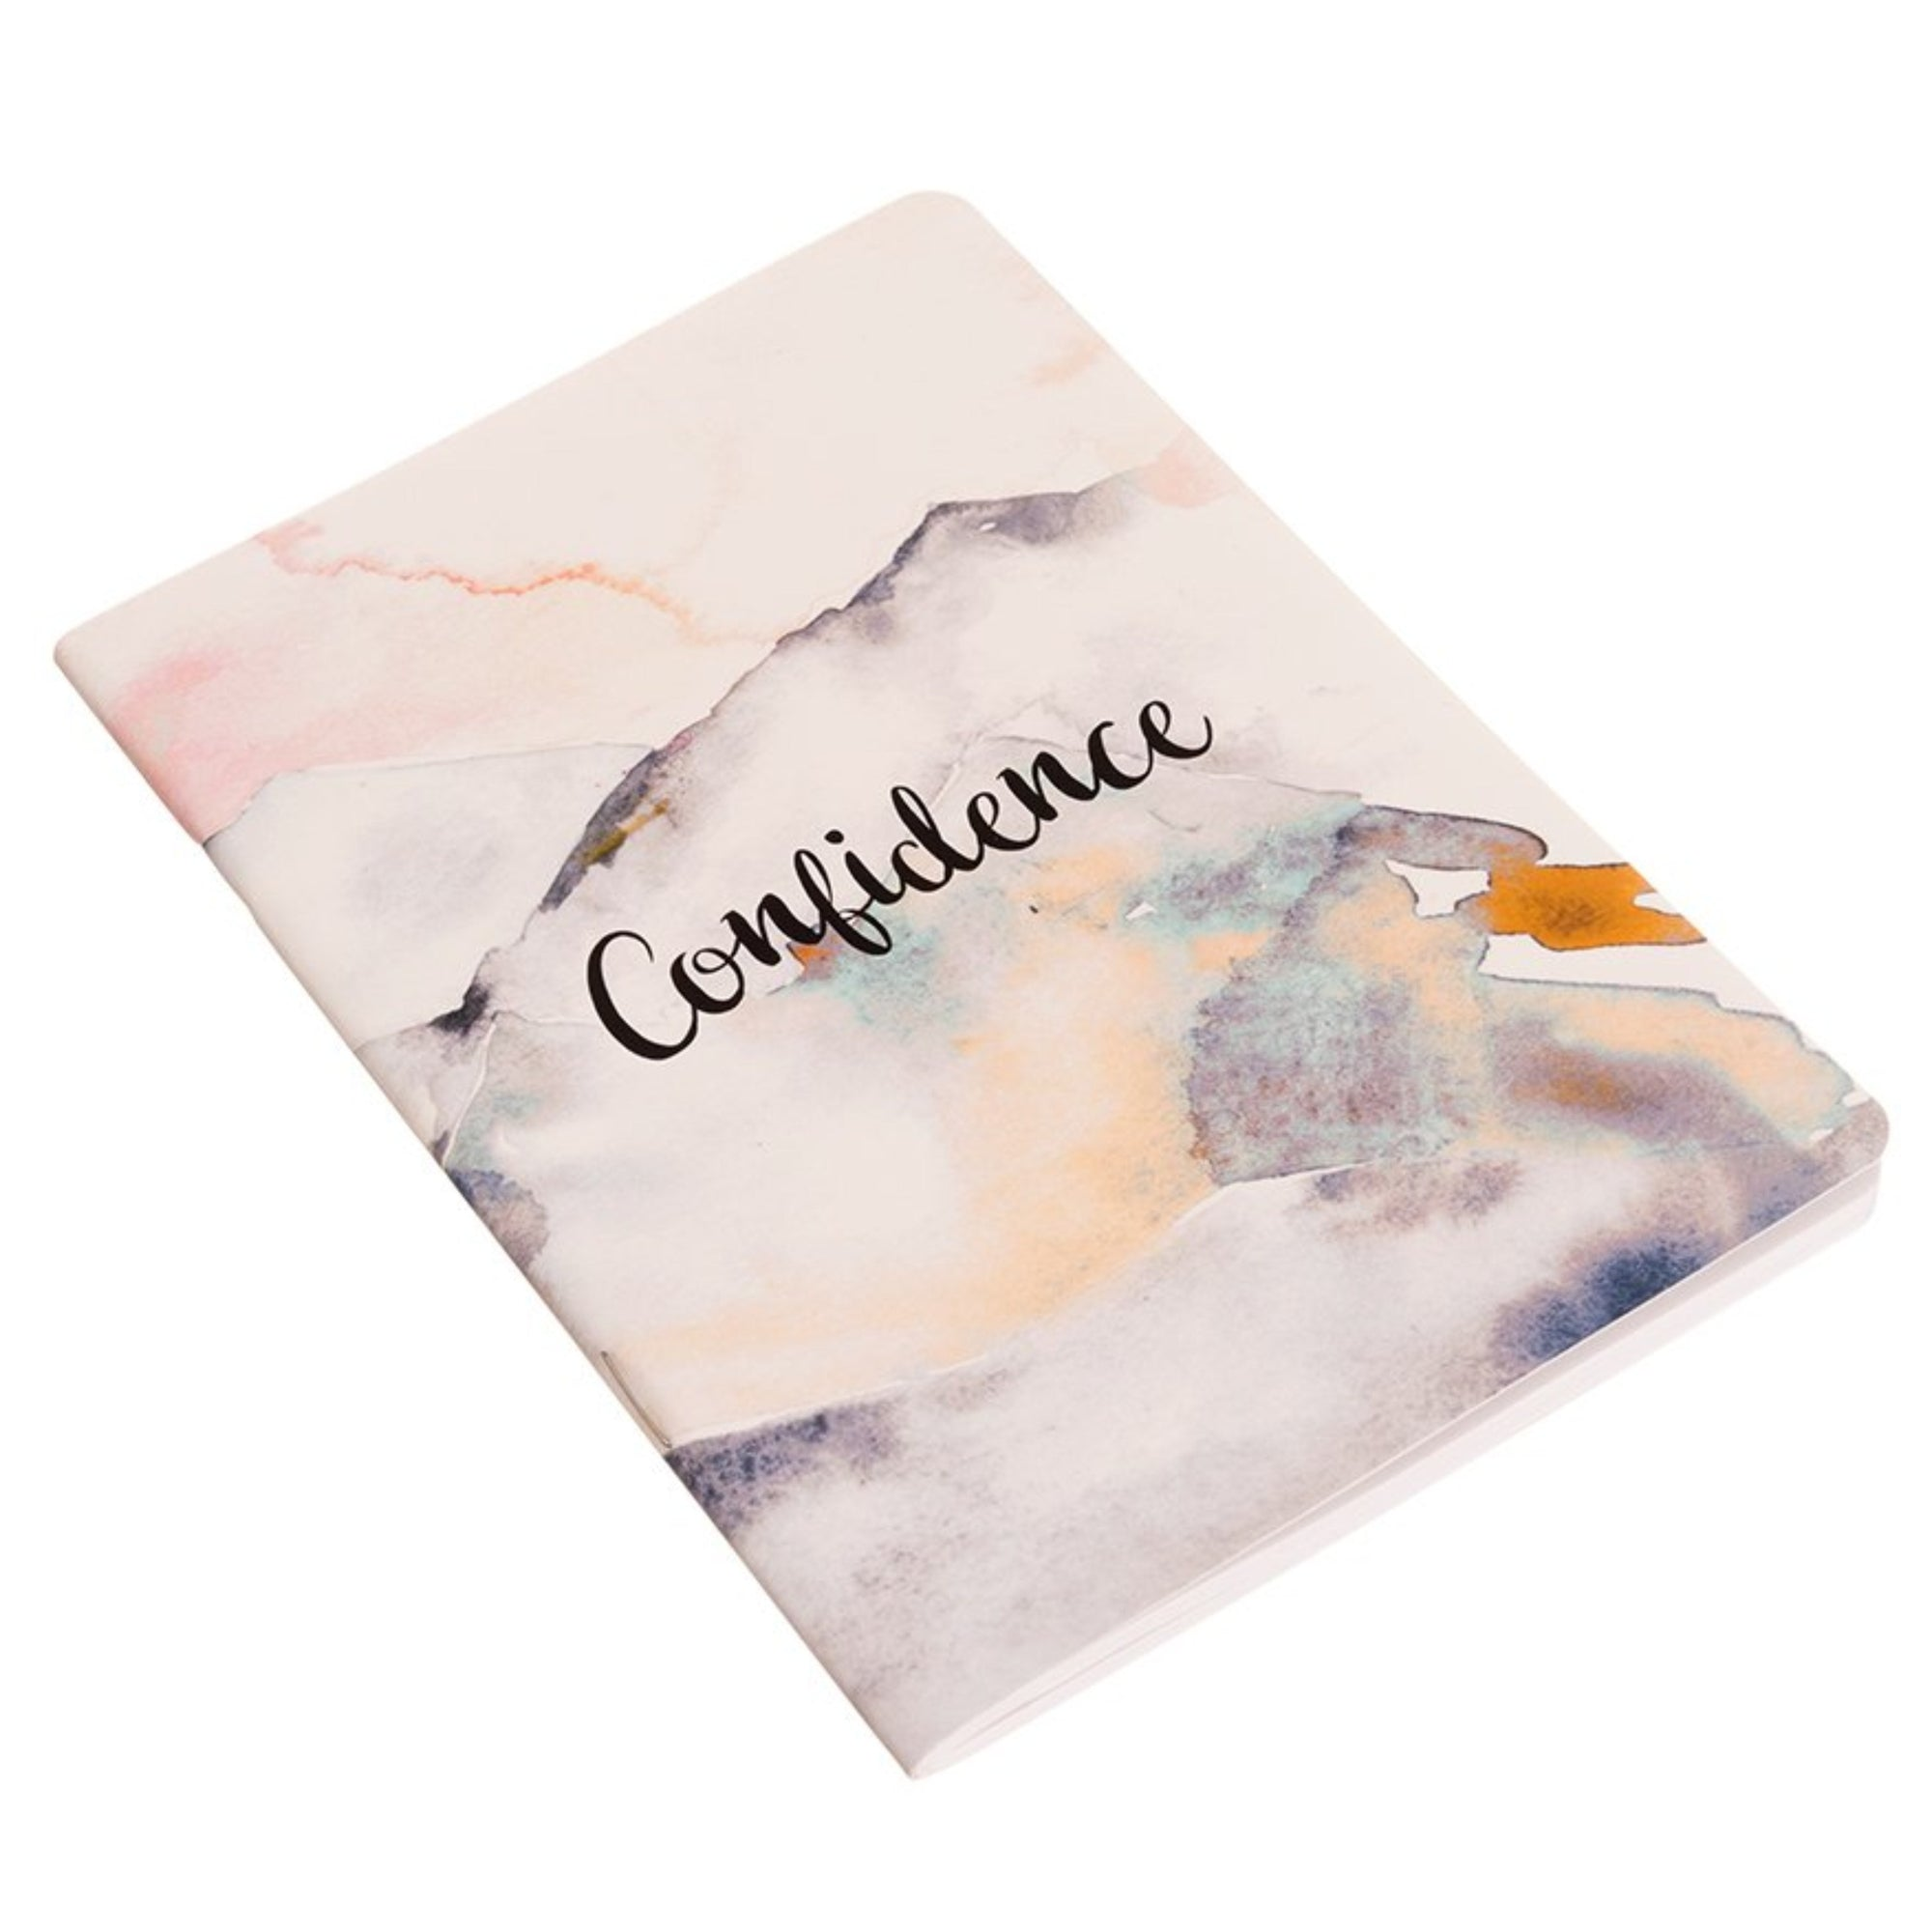 Gifts of Love Soft Cover Notebook IT A5 - Confidence